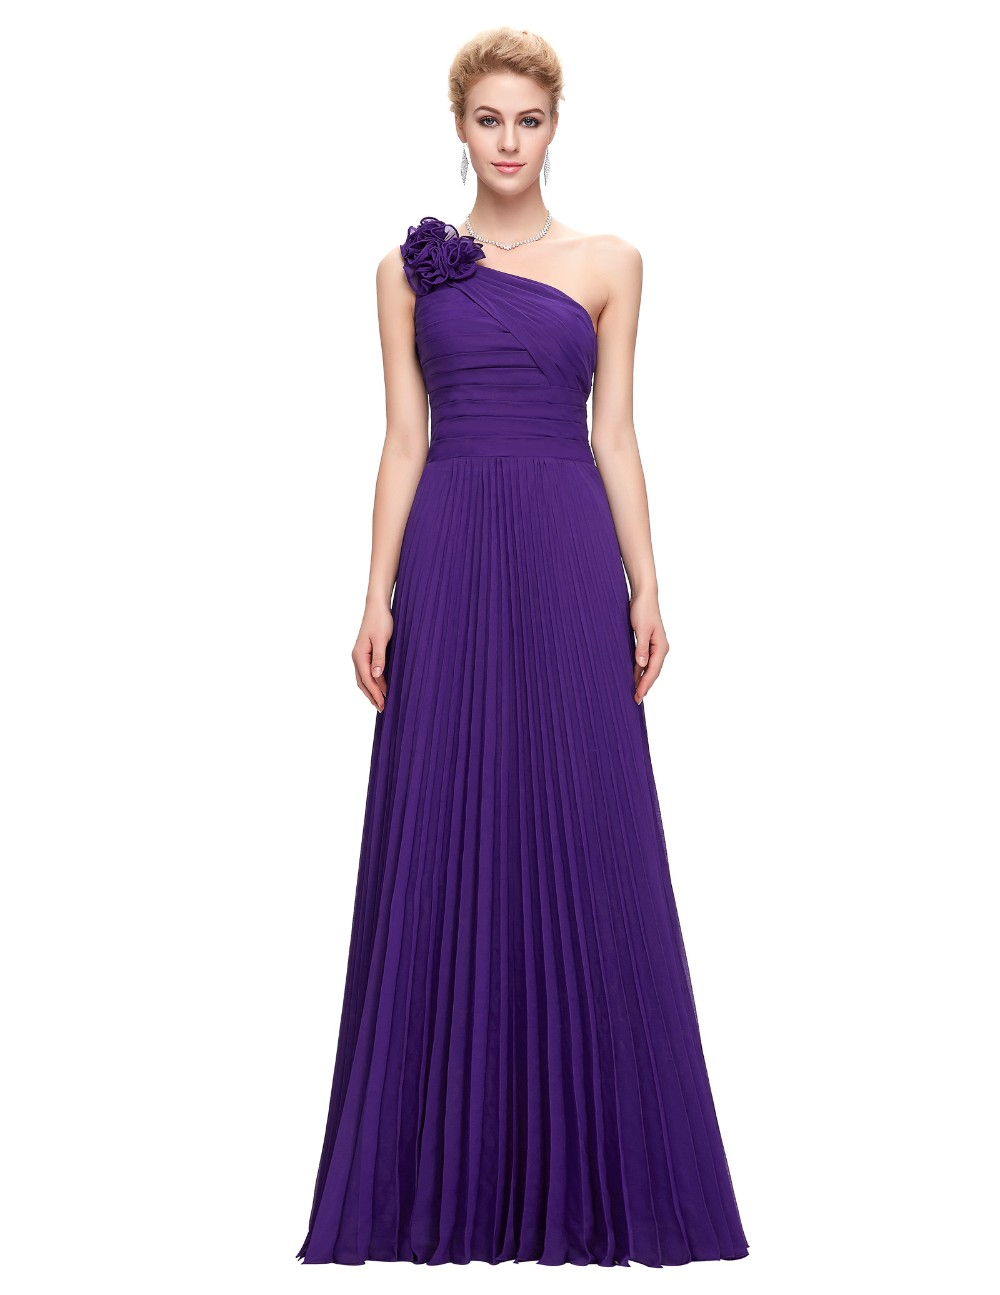 Grace Karin Chiffon Long Evening Dress One Shoulder Pleated Red Green Purple Royal Blue Formal Evening Dress Party Gowns 2018 16